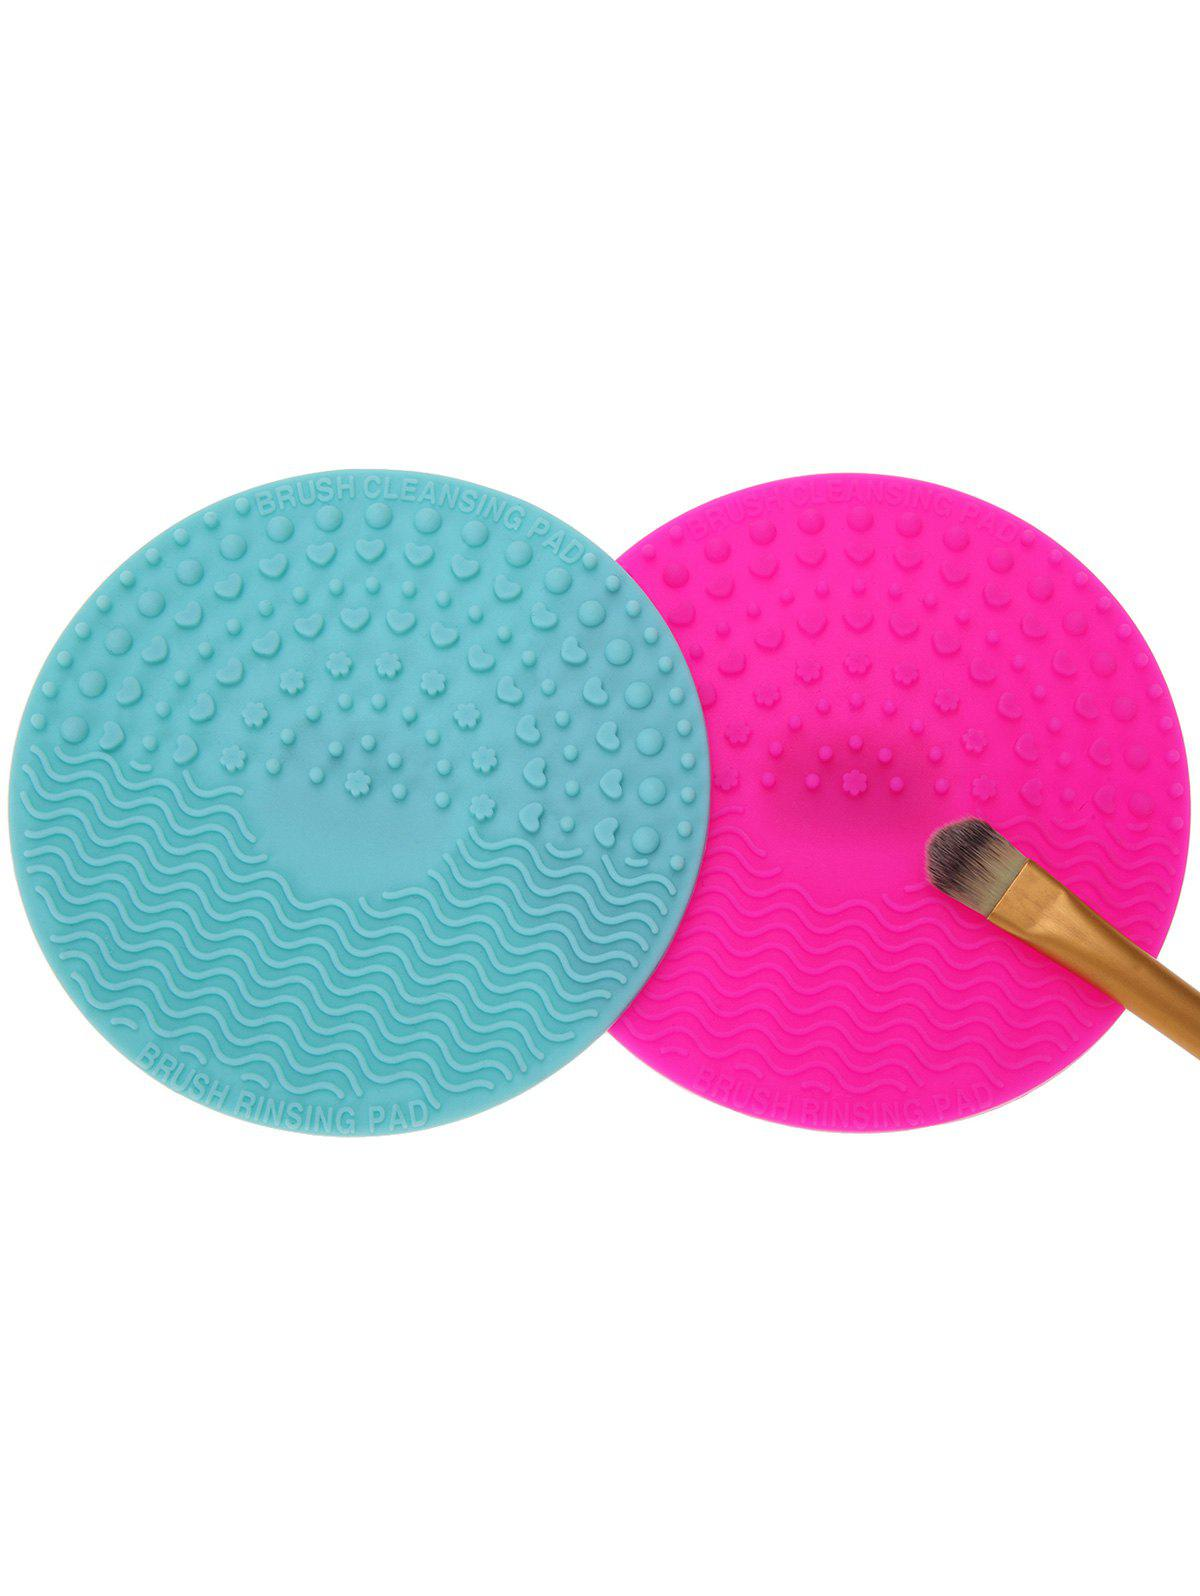 2 Pcs Makeup Brush Cleaner PadsBEAUTY<br><br>Color: MULTICOLOR; Category: Other Brush; Features: Professional; Weight: 0.0900kg; Package Contents: 2 x Brush Cleaning Pads (Pcs);